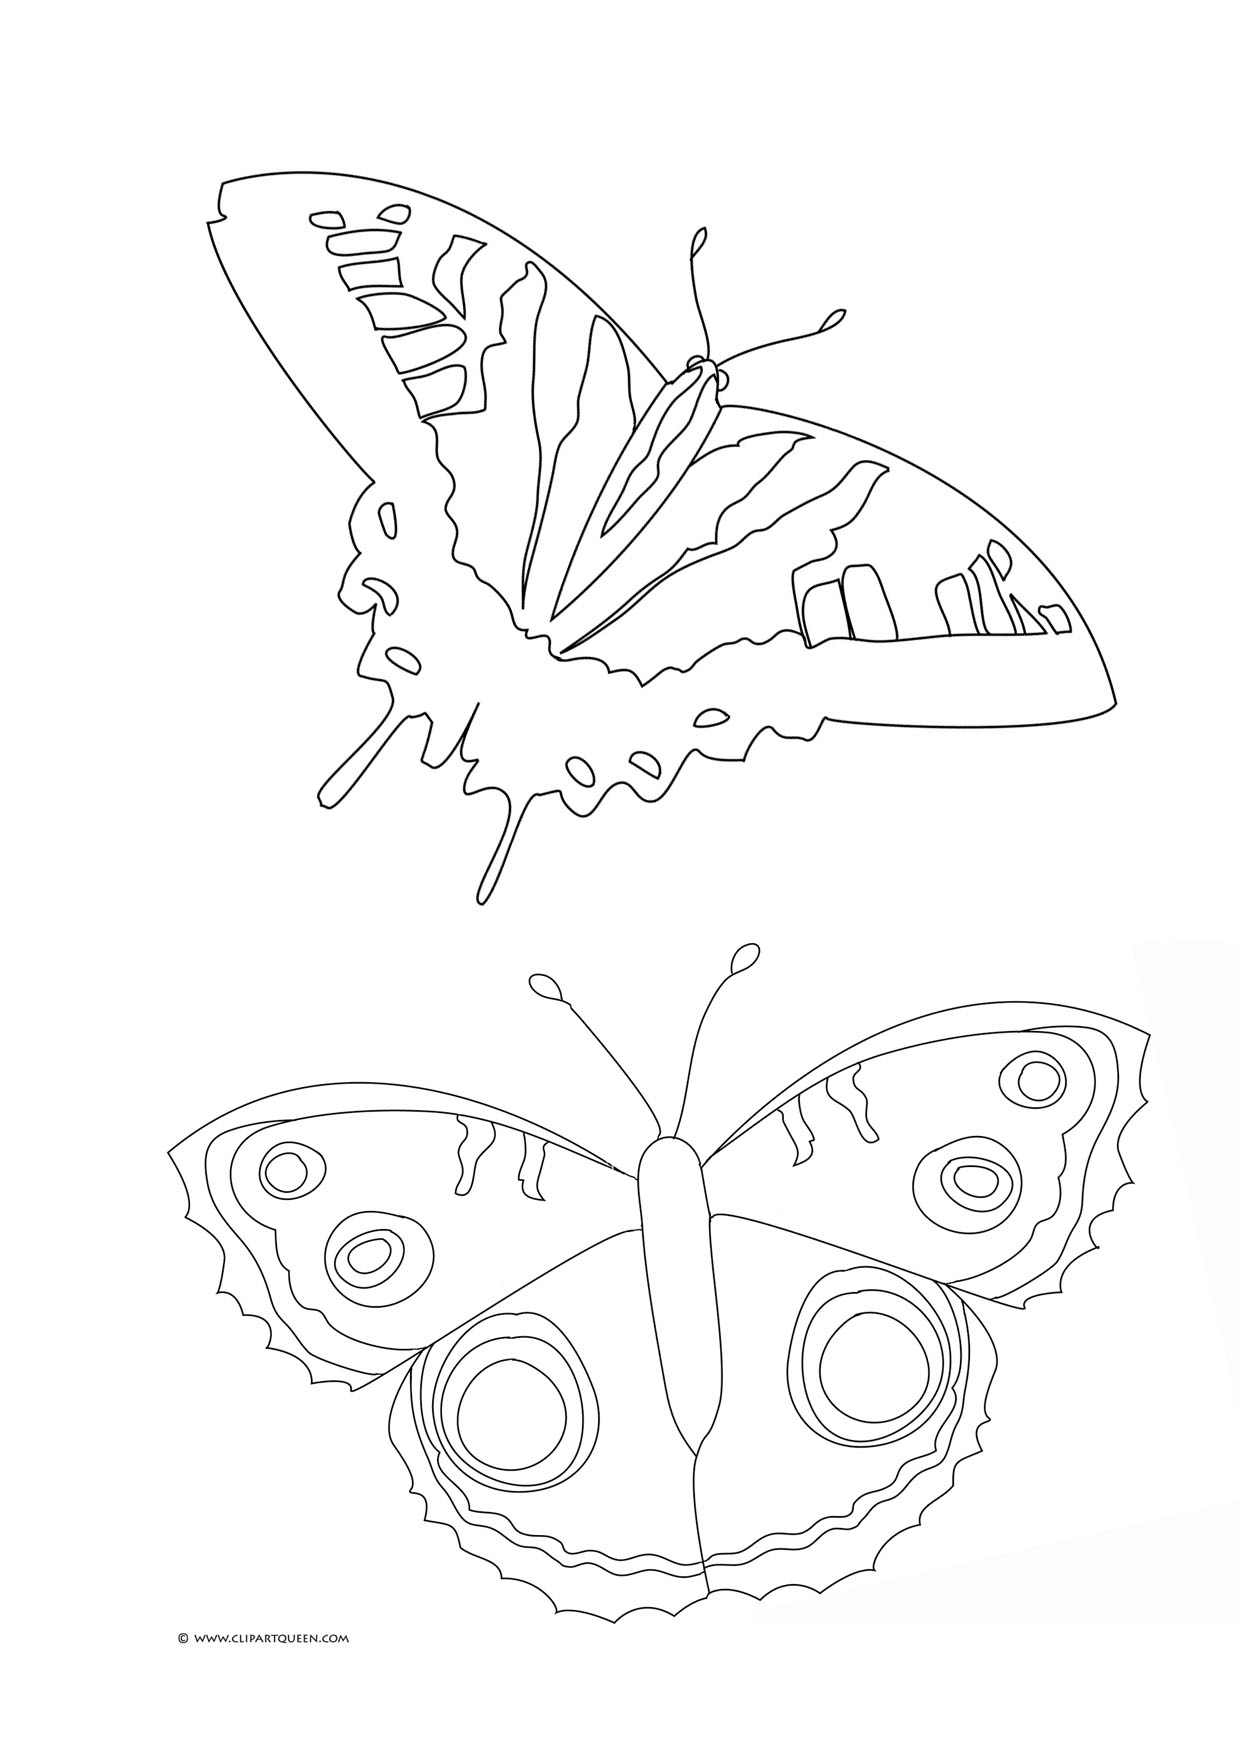 coloring page with butterflies butterfly drawings to color - Butterfly Color Sheet